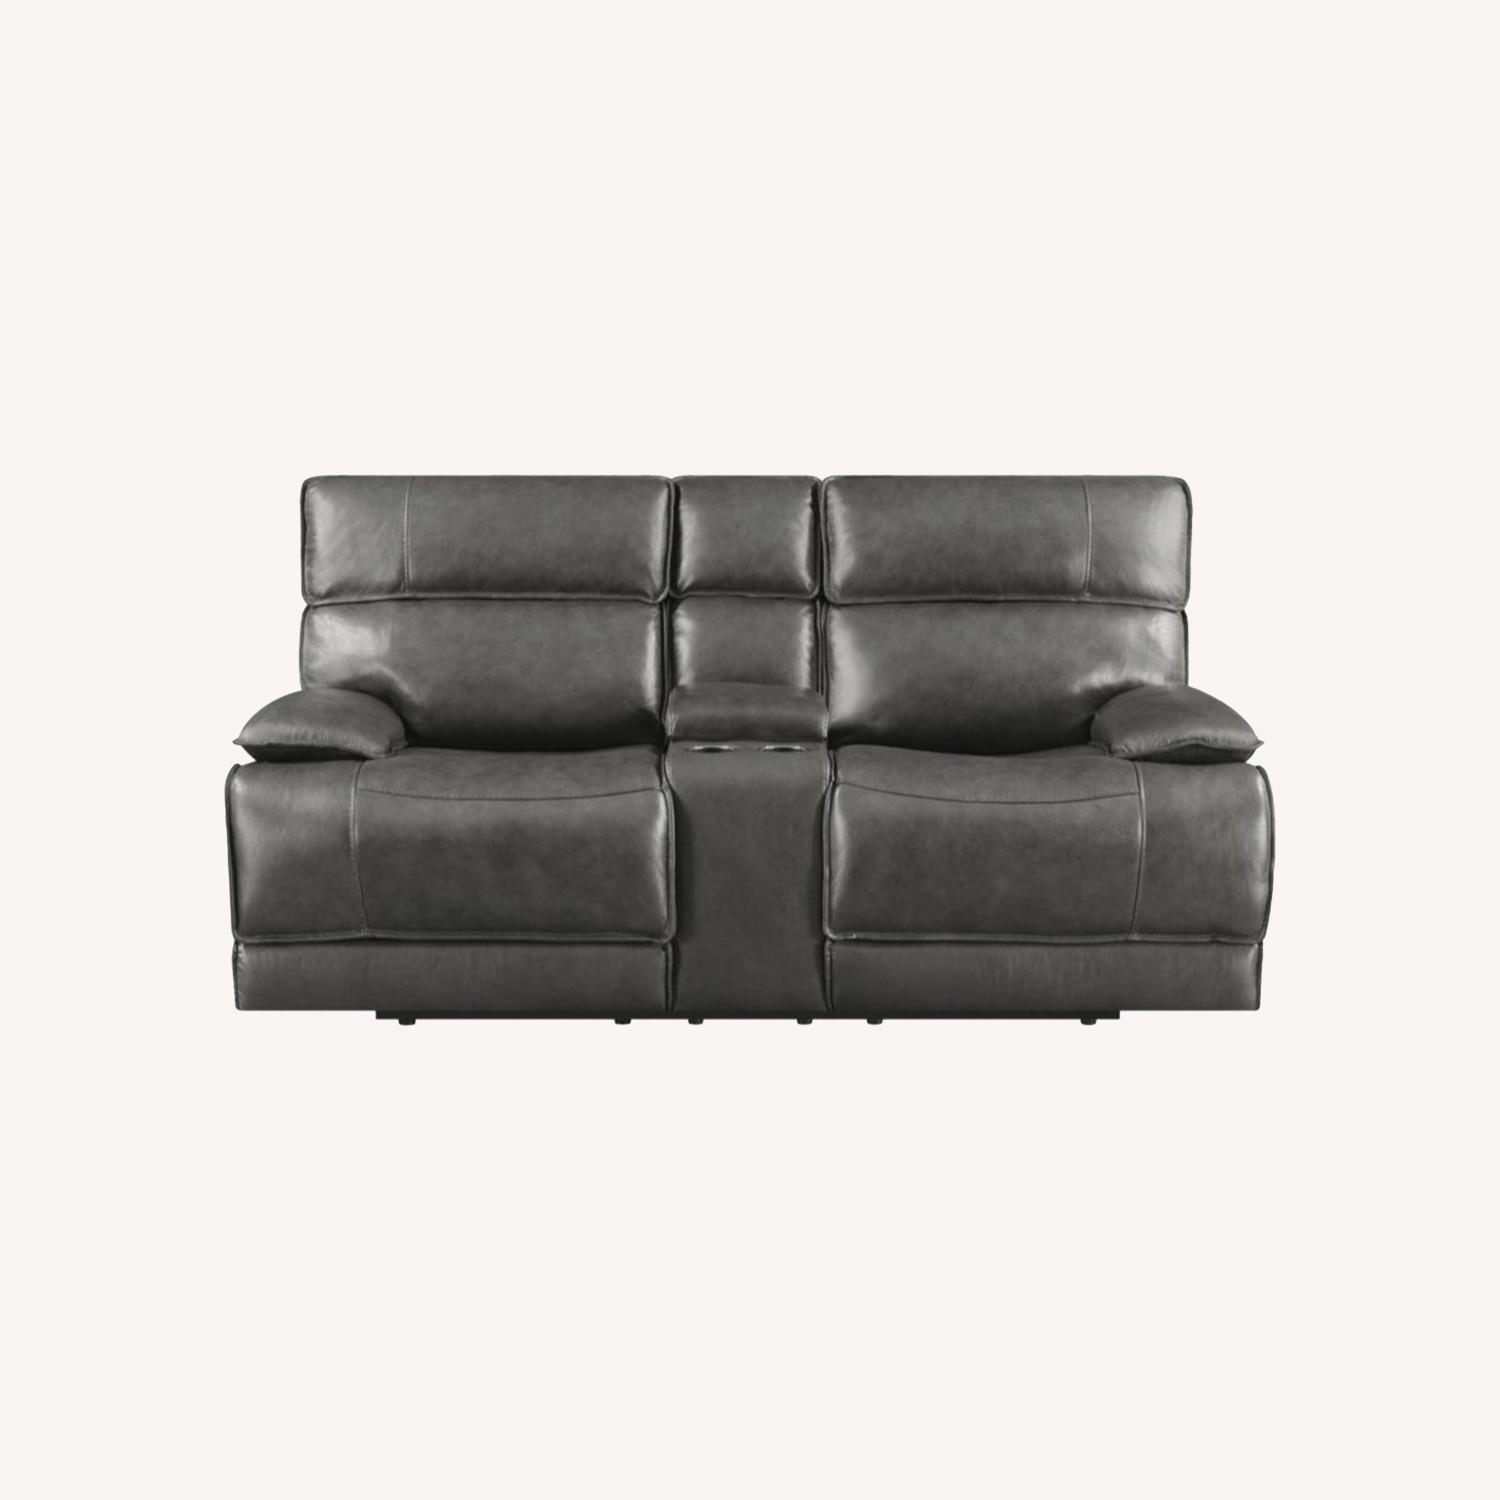 Power Recline Loveseat In Charcoal Leather - image-11